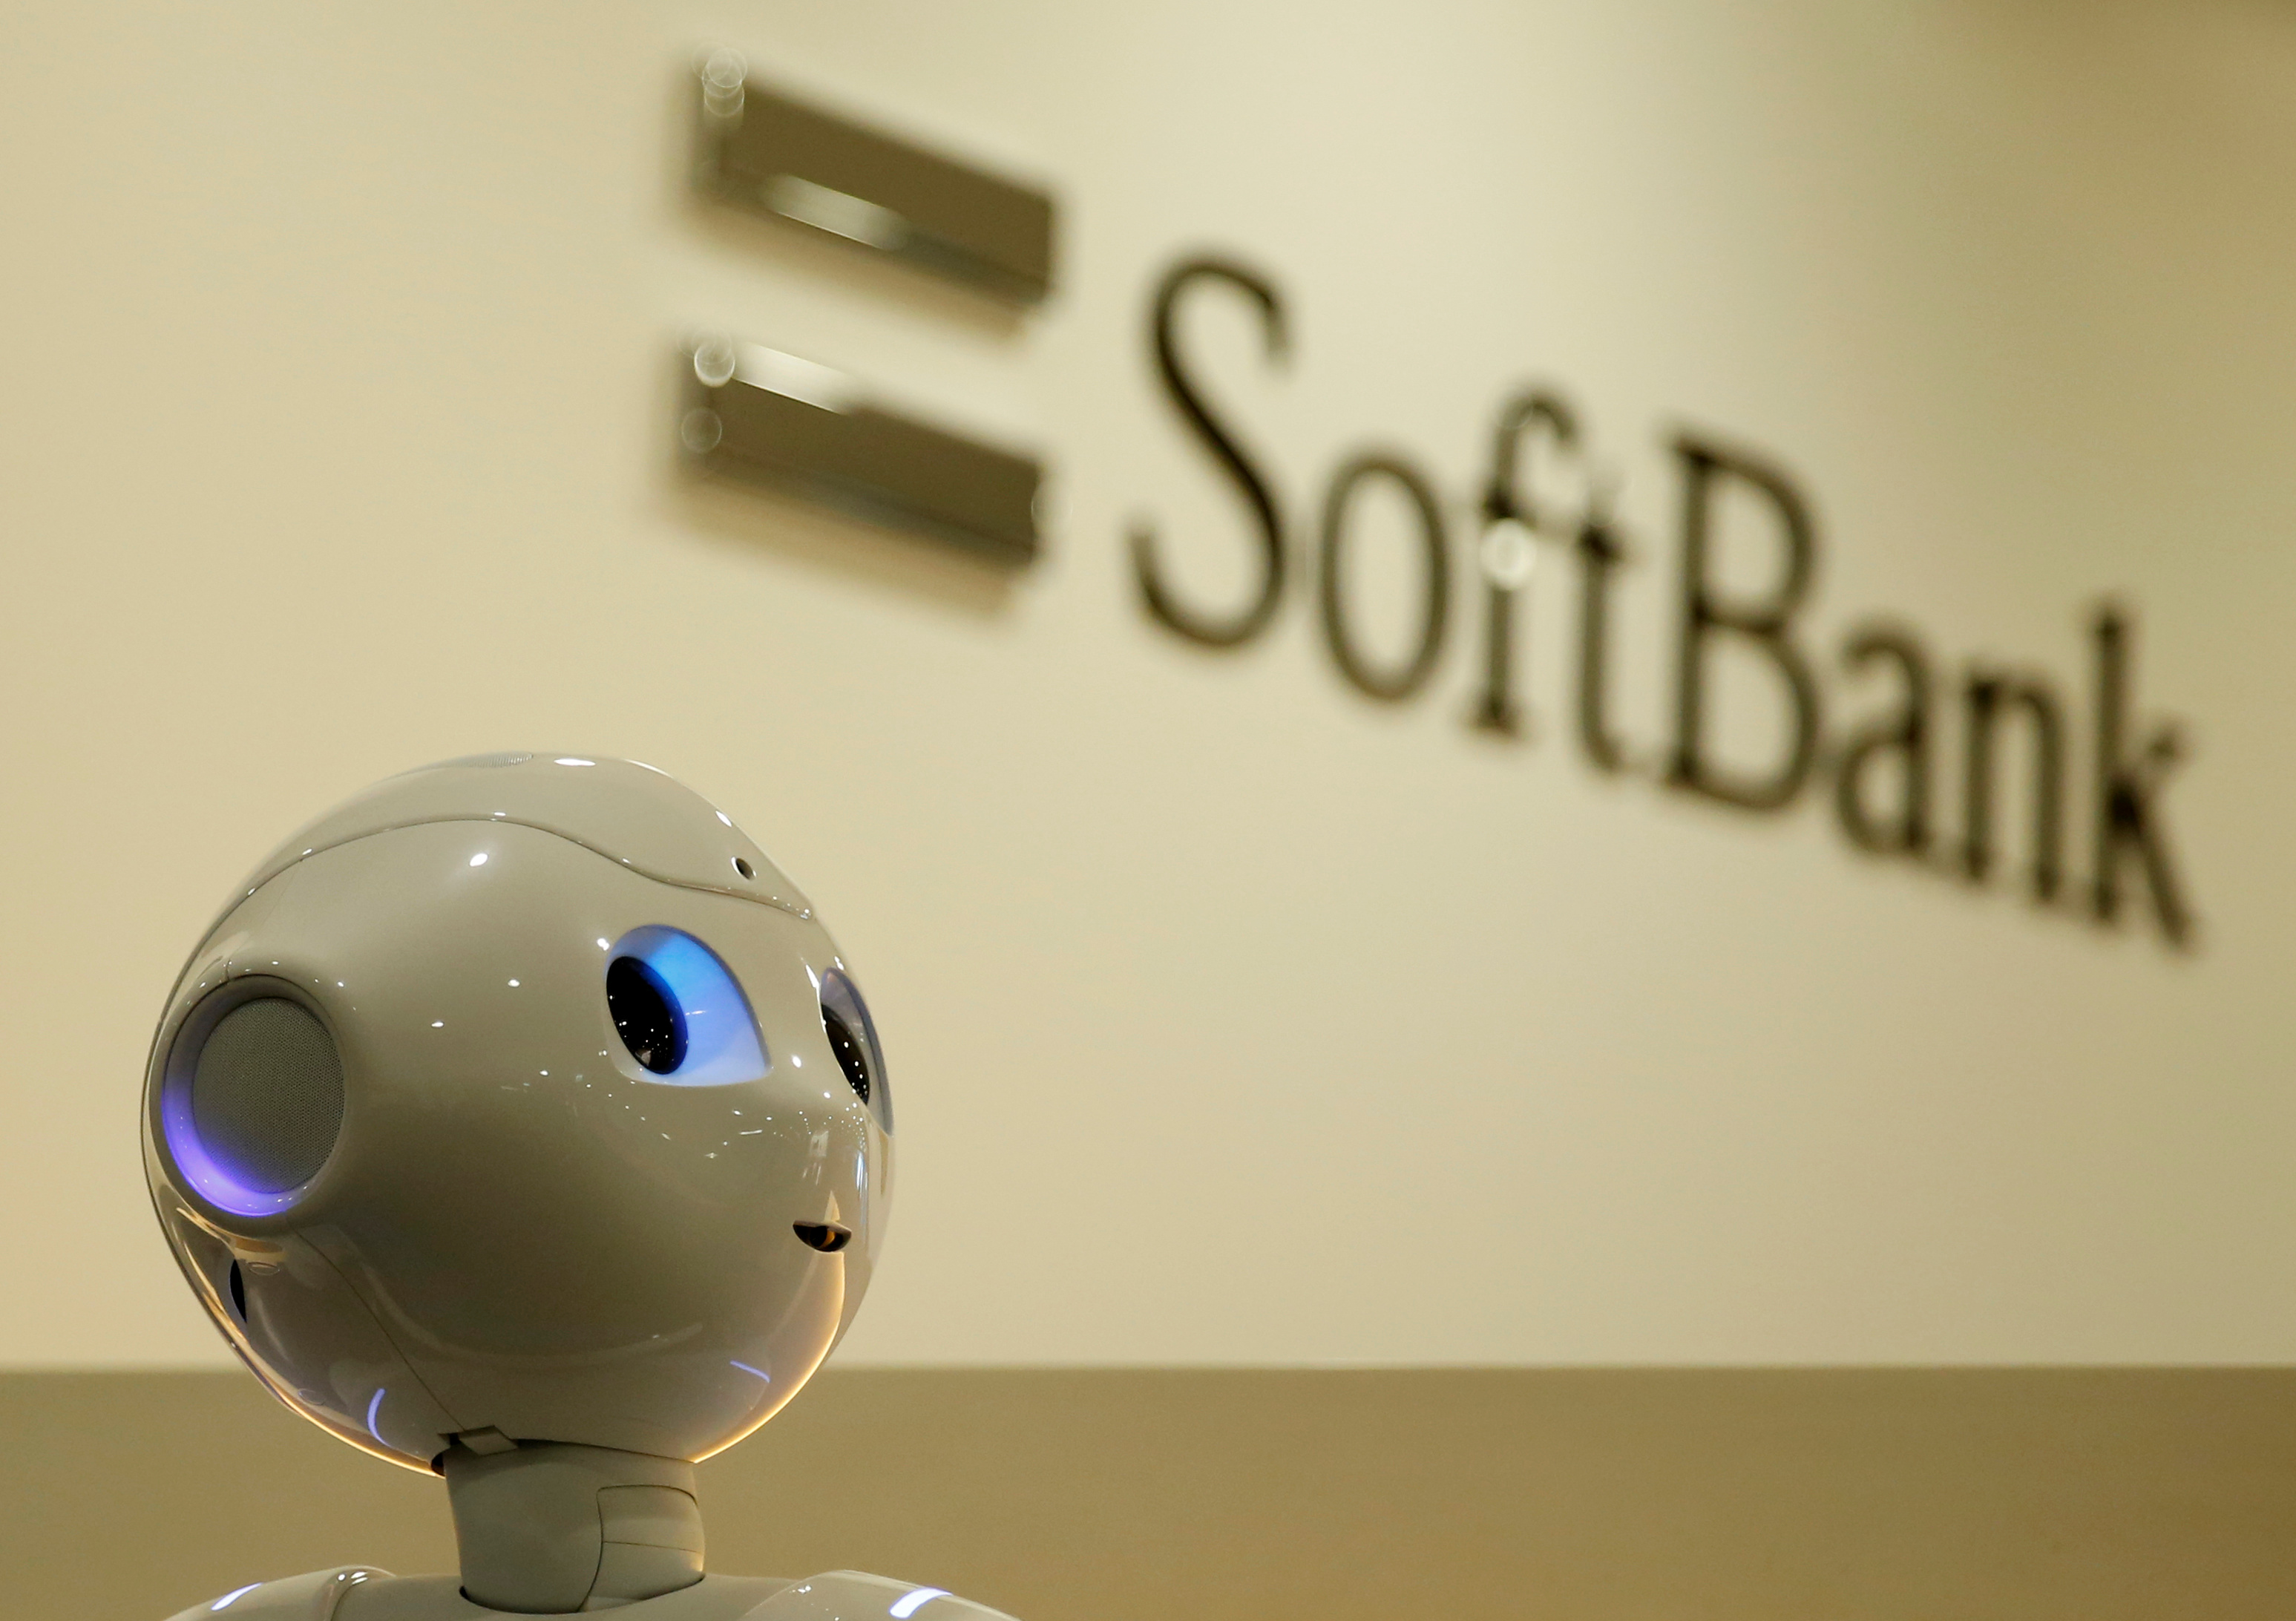 SoftBank's Vision Fund has $34 bln jackpot in sight